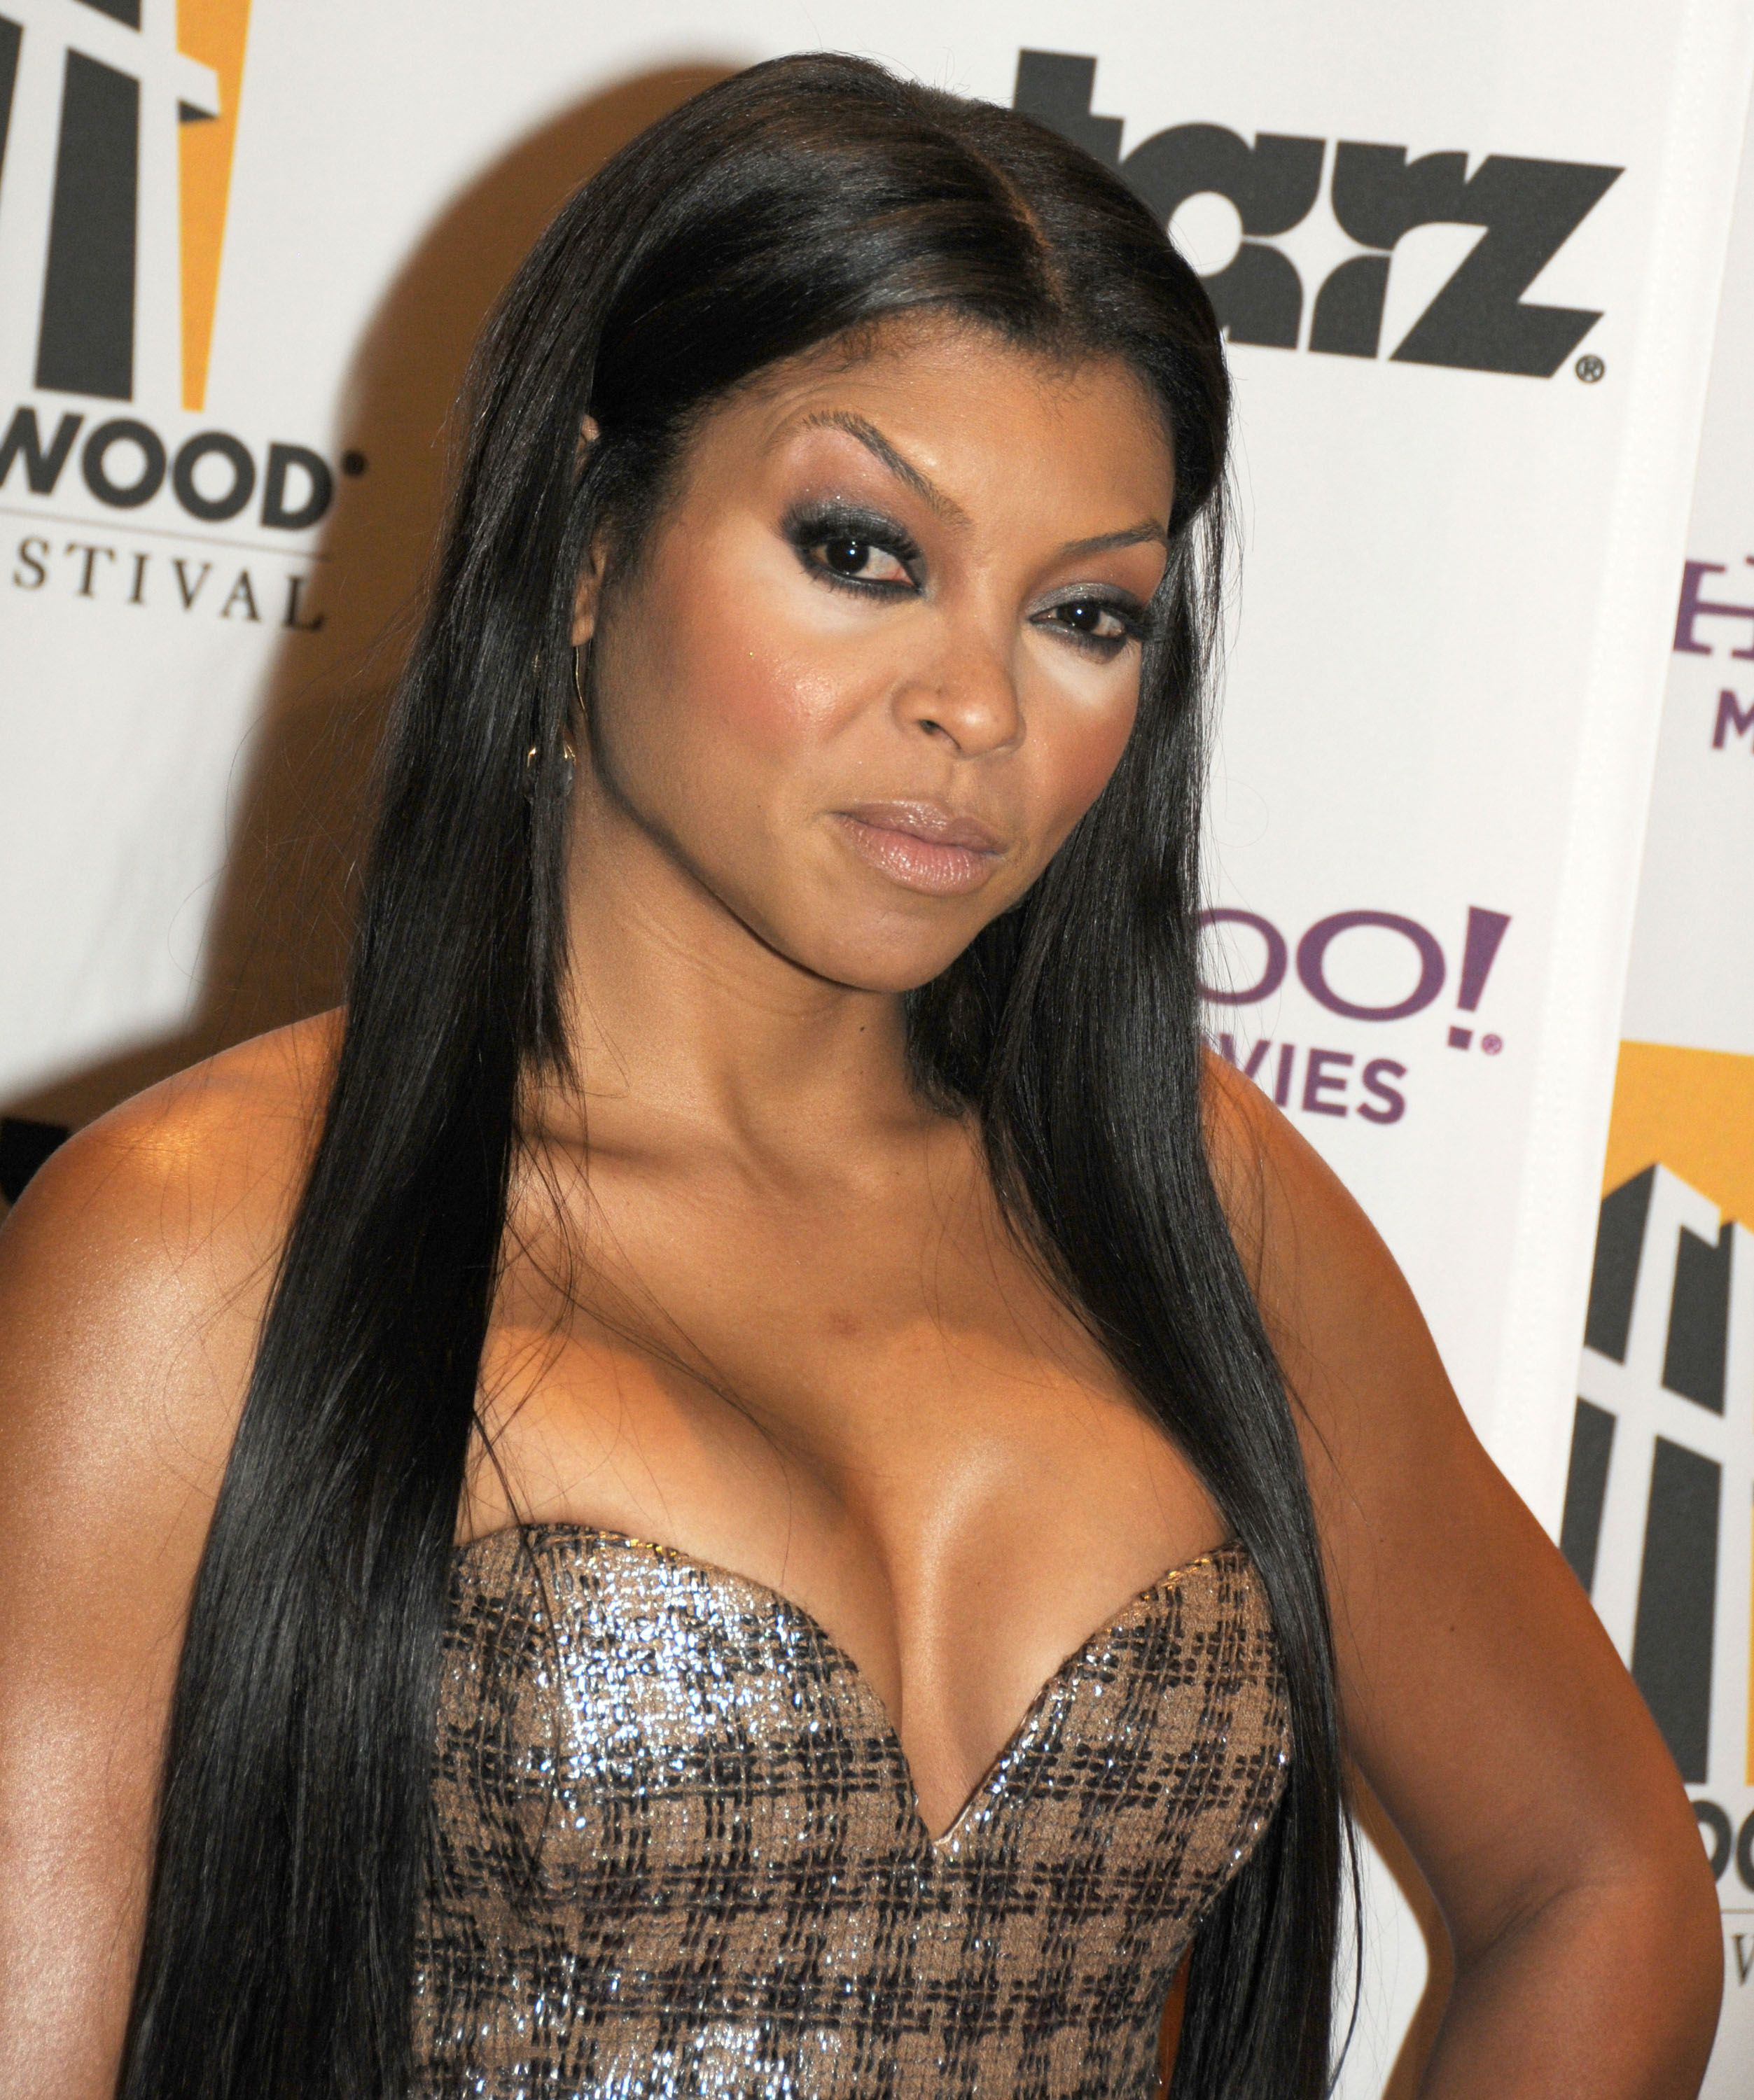 Taraji P. Henson during the 13th Annual Hollywood Awards Gala held at the Beverly Hilton Hotel on October 26, 2009 | Photo: Getty Images